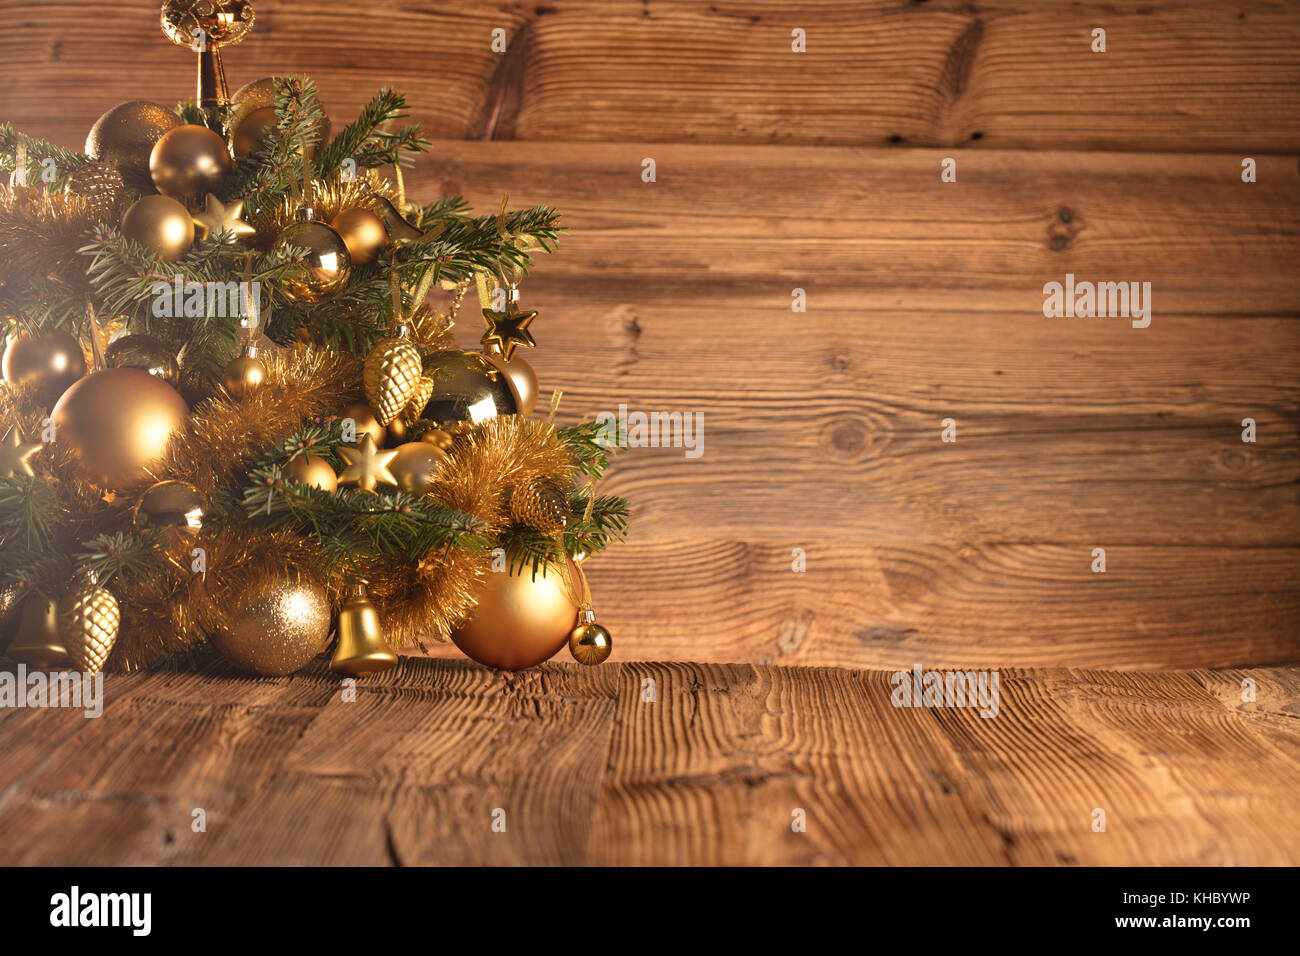 Christmas Decoration In Golden And Brownish Aesthetics With